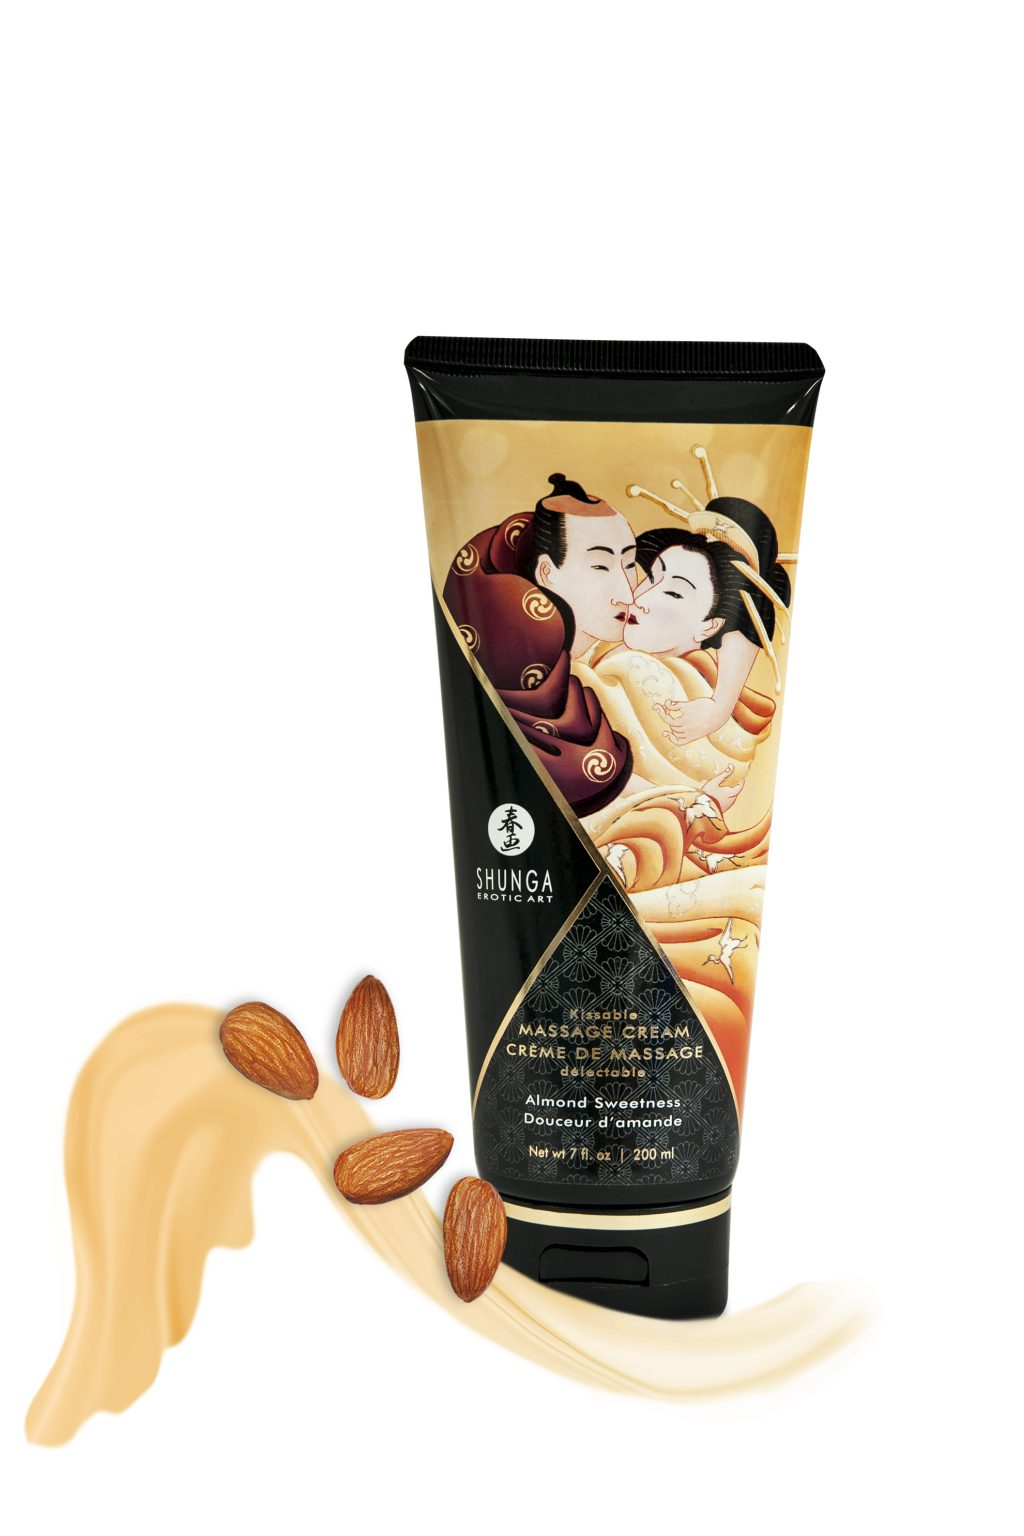 Kissable Massage Cream Almond